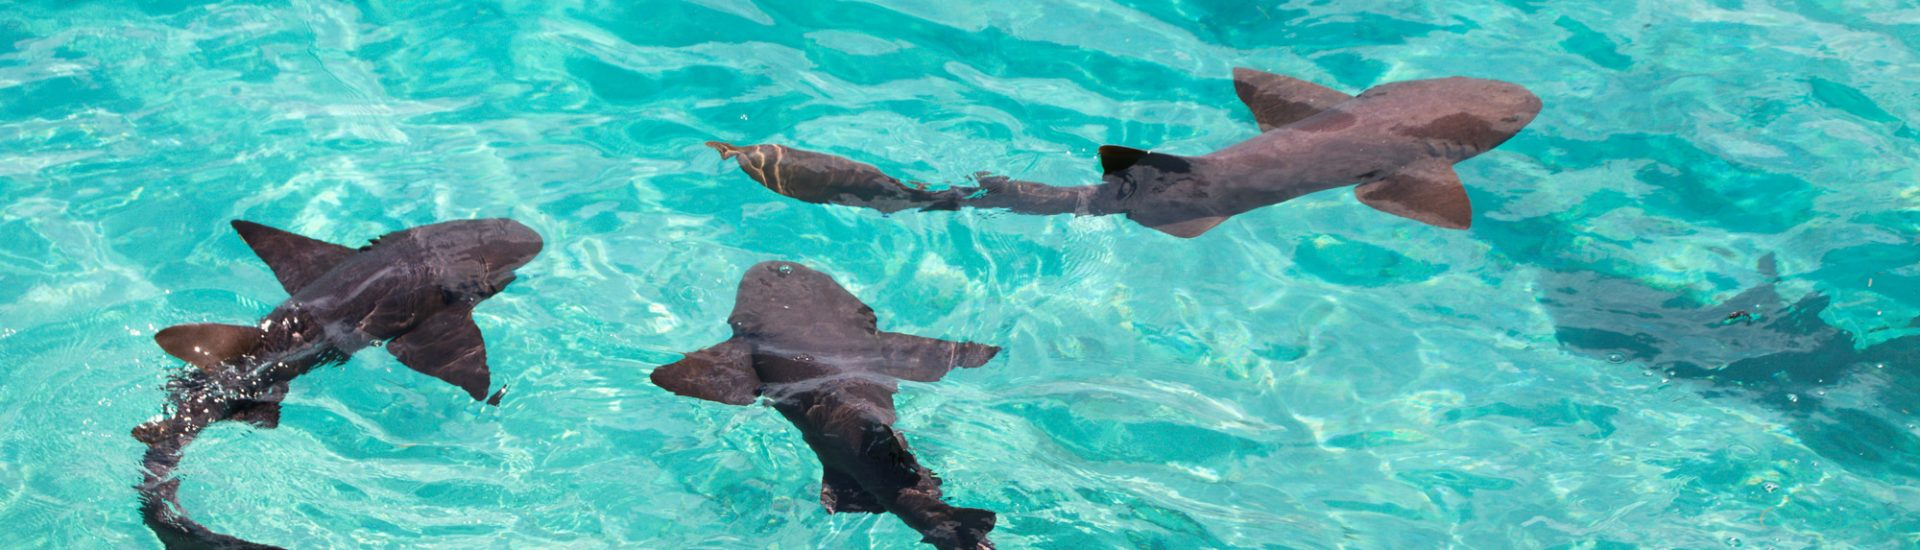 The Compass Cay sharks swarm the marina. Jump in to swim with nurse sharks Bahamas and go swimming with sharks Bahamas on a thrilling adventure.